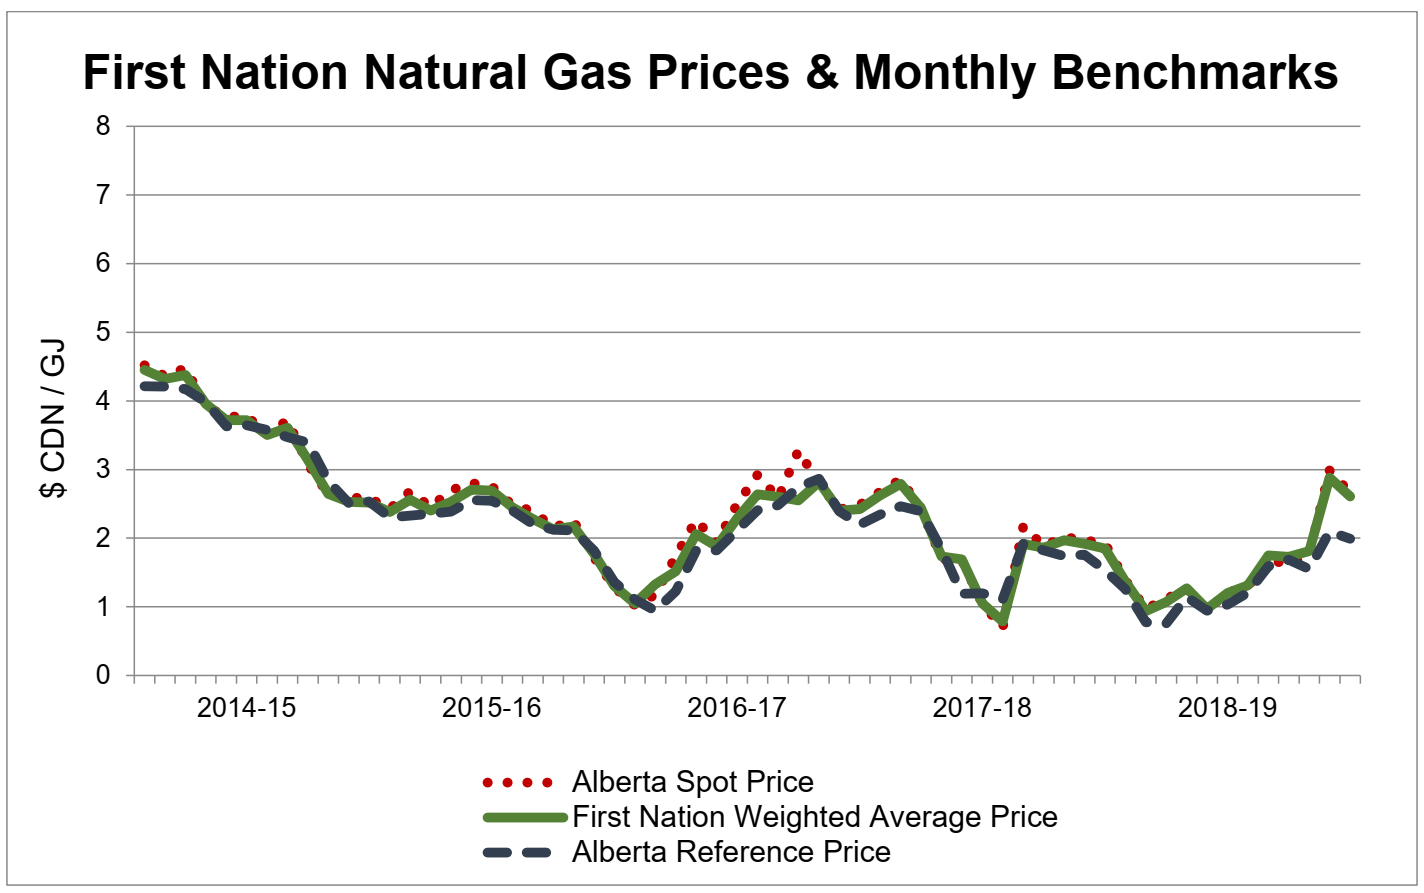 First Nation Natural Gas Prices & Monthly Benchmarks